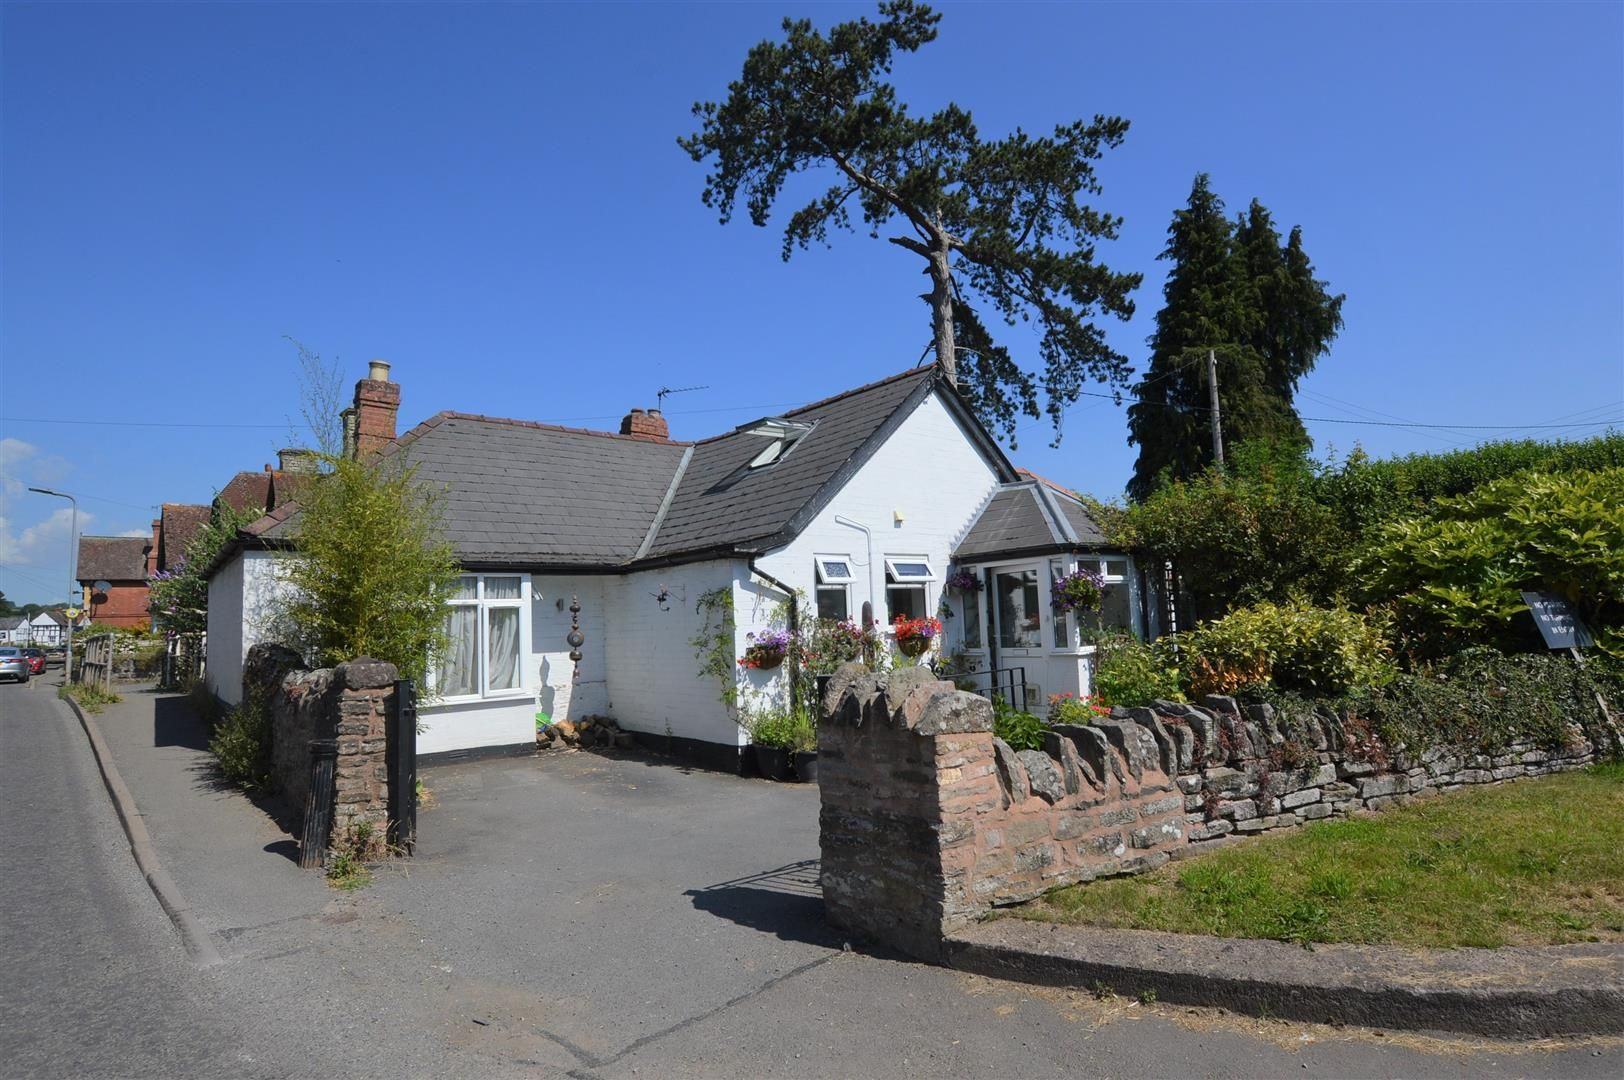 2 bed detached bungalow for sale in Eardisley, HR3